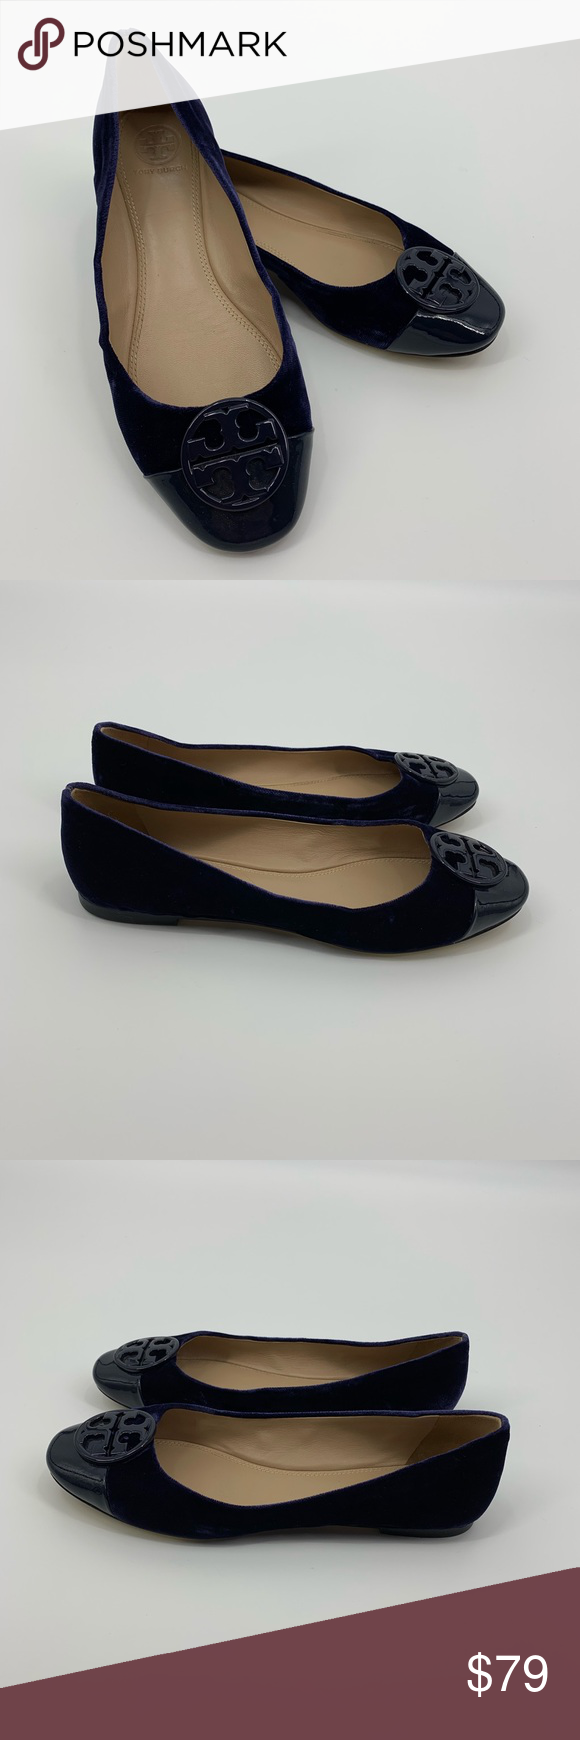 8307728c7068 Tory Burch Blue Chelsea Cap Toe Velvet Ballet Flat This is a pair of Tory  Burch